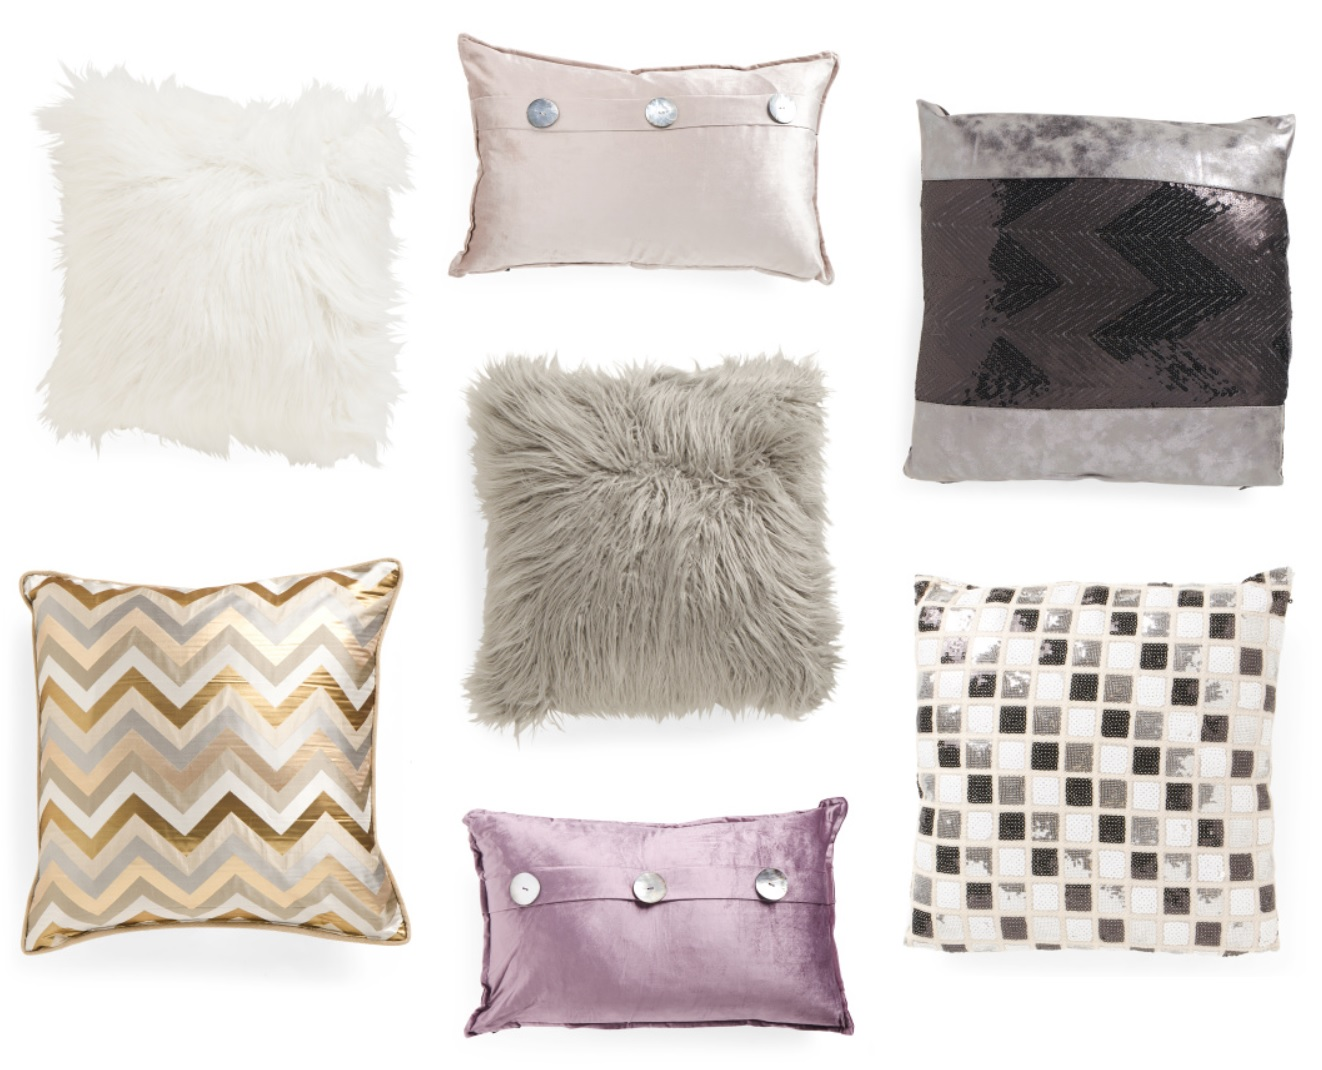 Throw Pillows At Tj Maxx : TJ Maxx: Couch/Throw Pillows From $16.99 + Free Shipping Kollel Budget